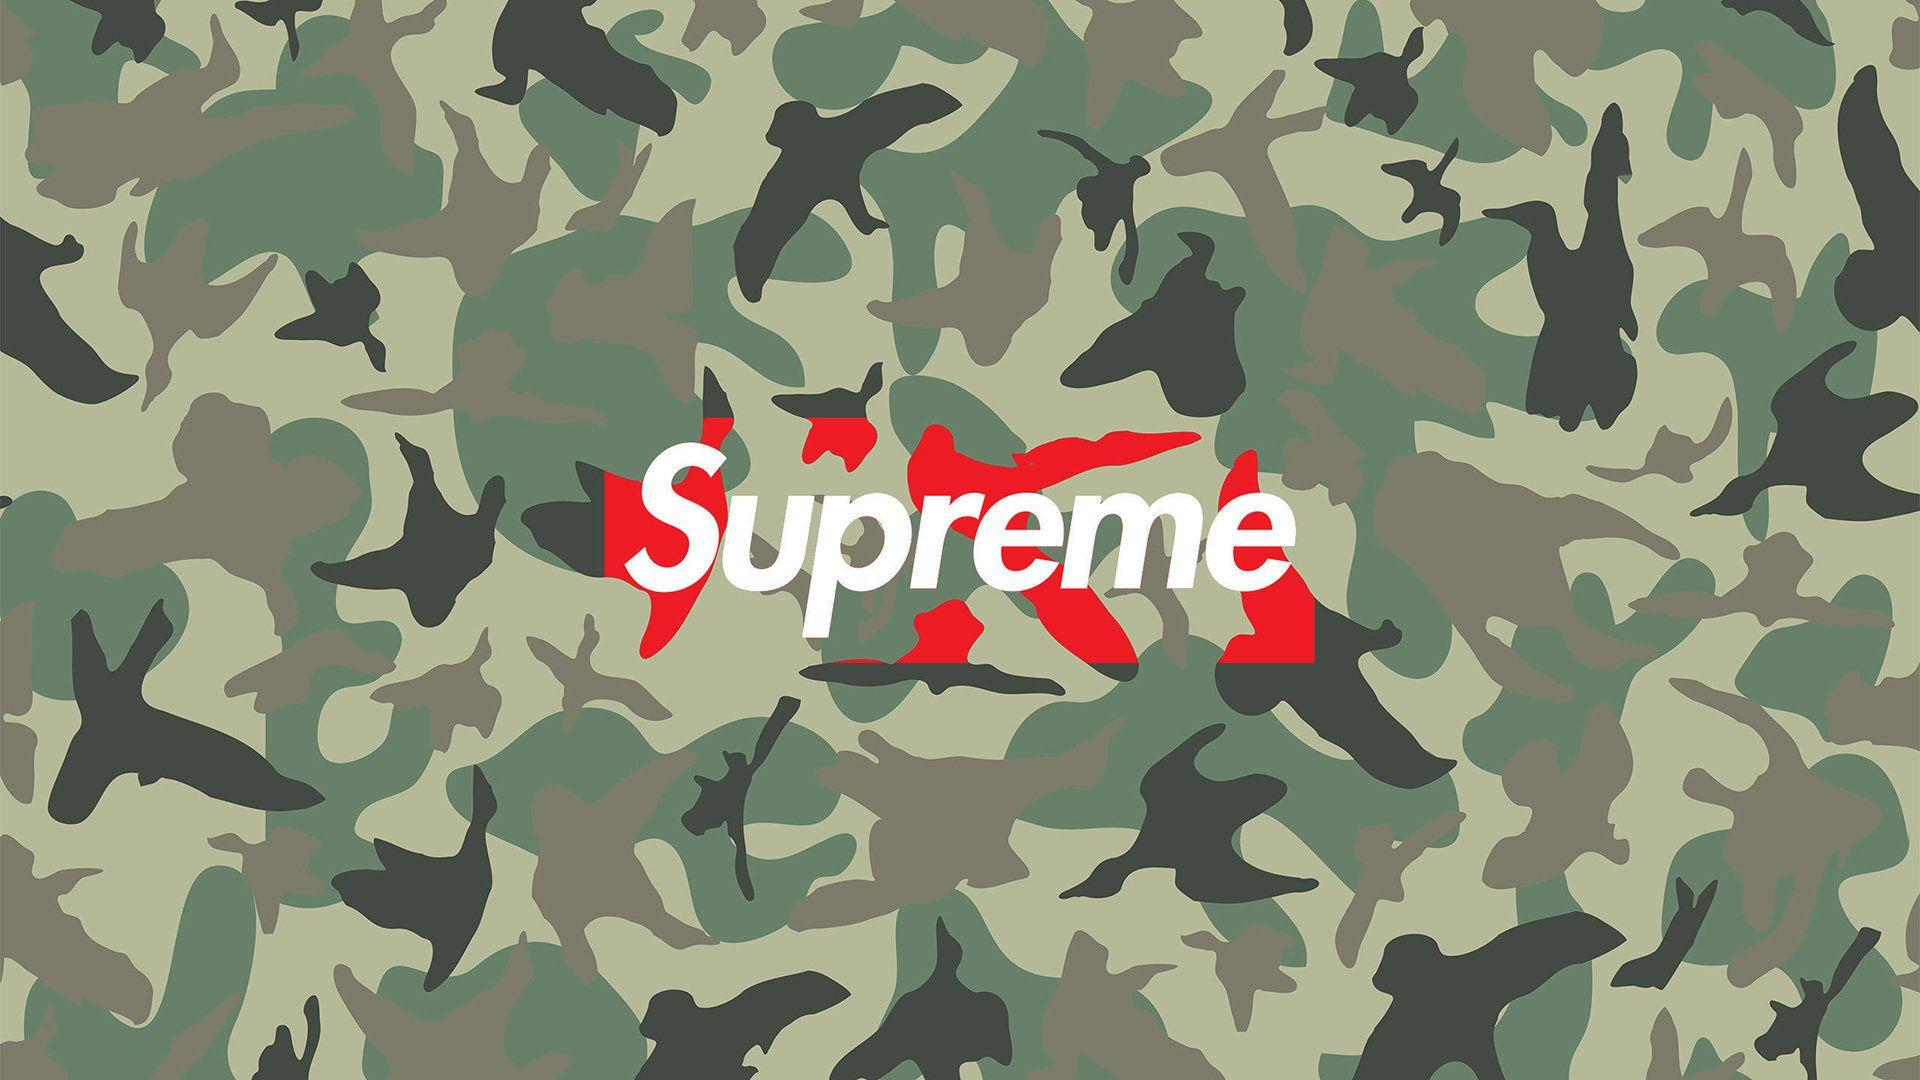 supreme images